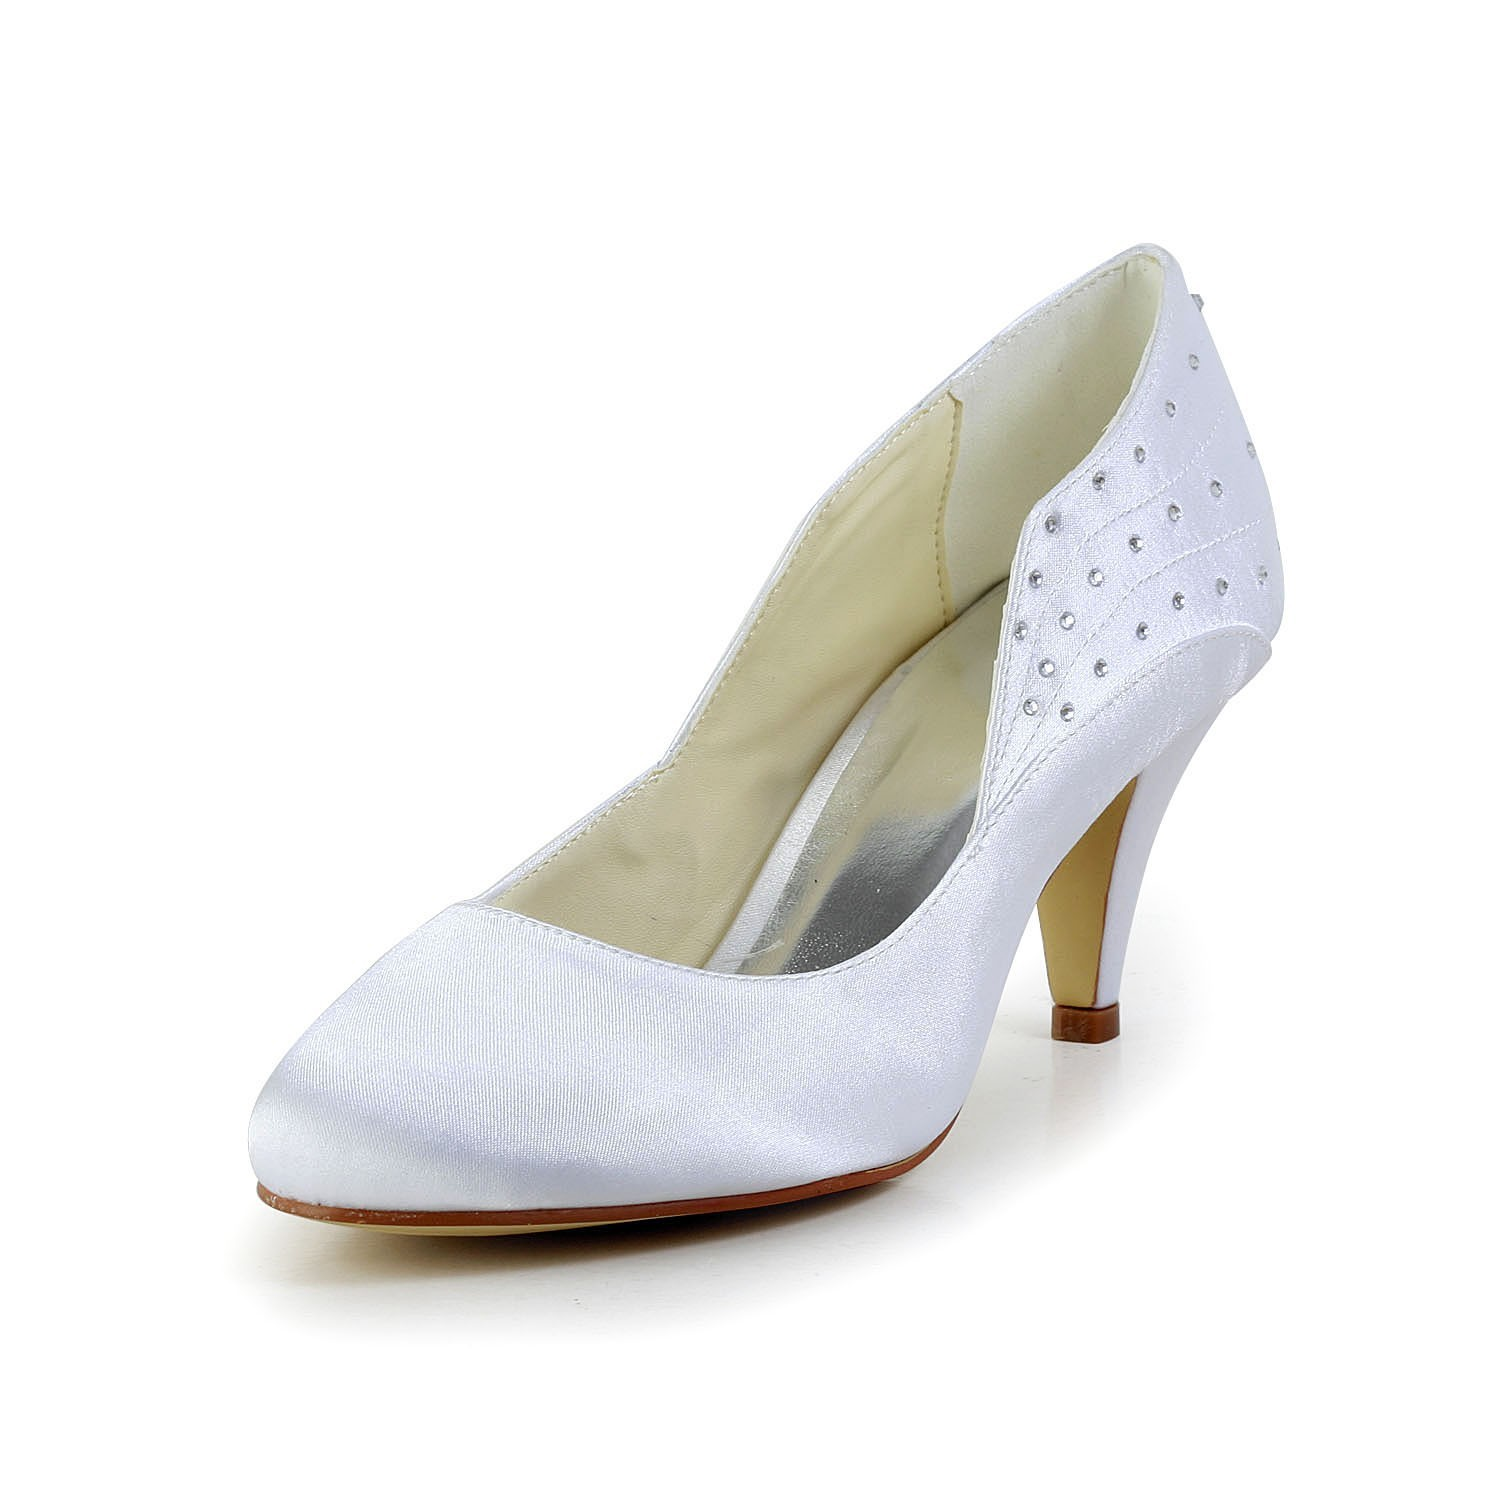 b5035748d Fashion Trends Women s Simple Satin Closed Toe Cone Heel White Wedding Shoes  With Rhinestone